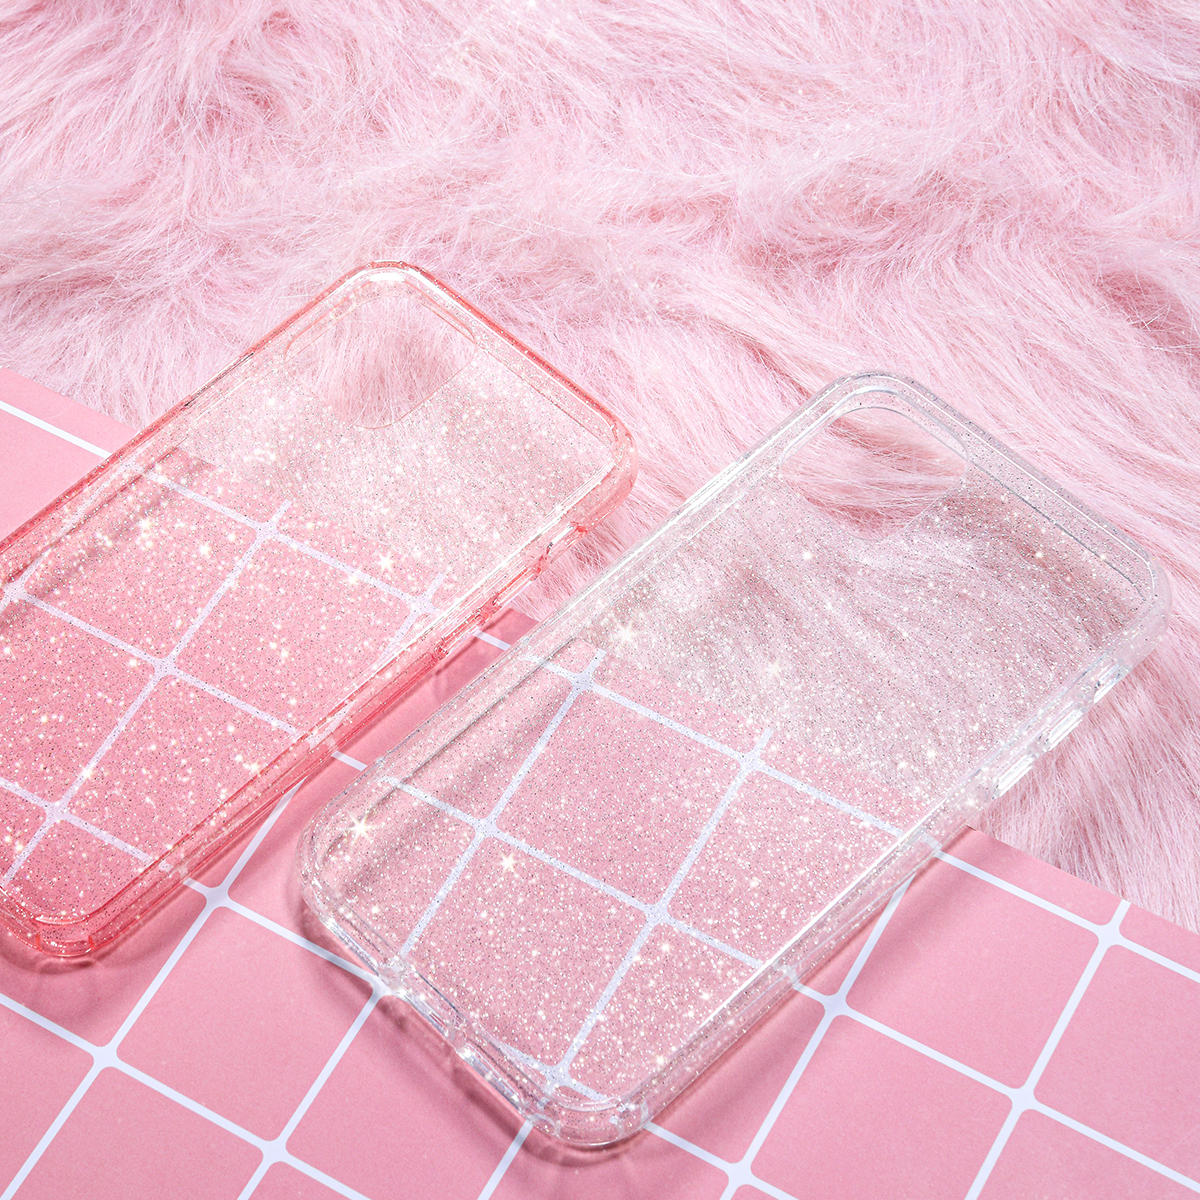 Rock Shockproof Transparent Soft TPU +Hard PC Bling Glitter Shiny Phone Protective Case for iPhone 11 Pro 5.8 inch